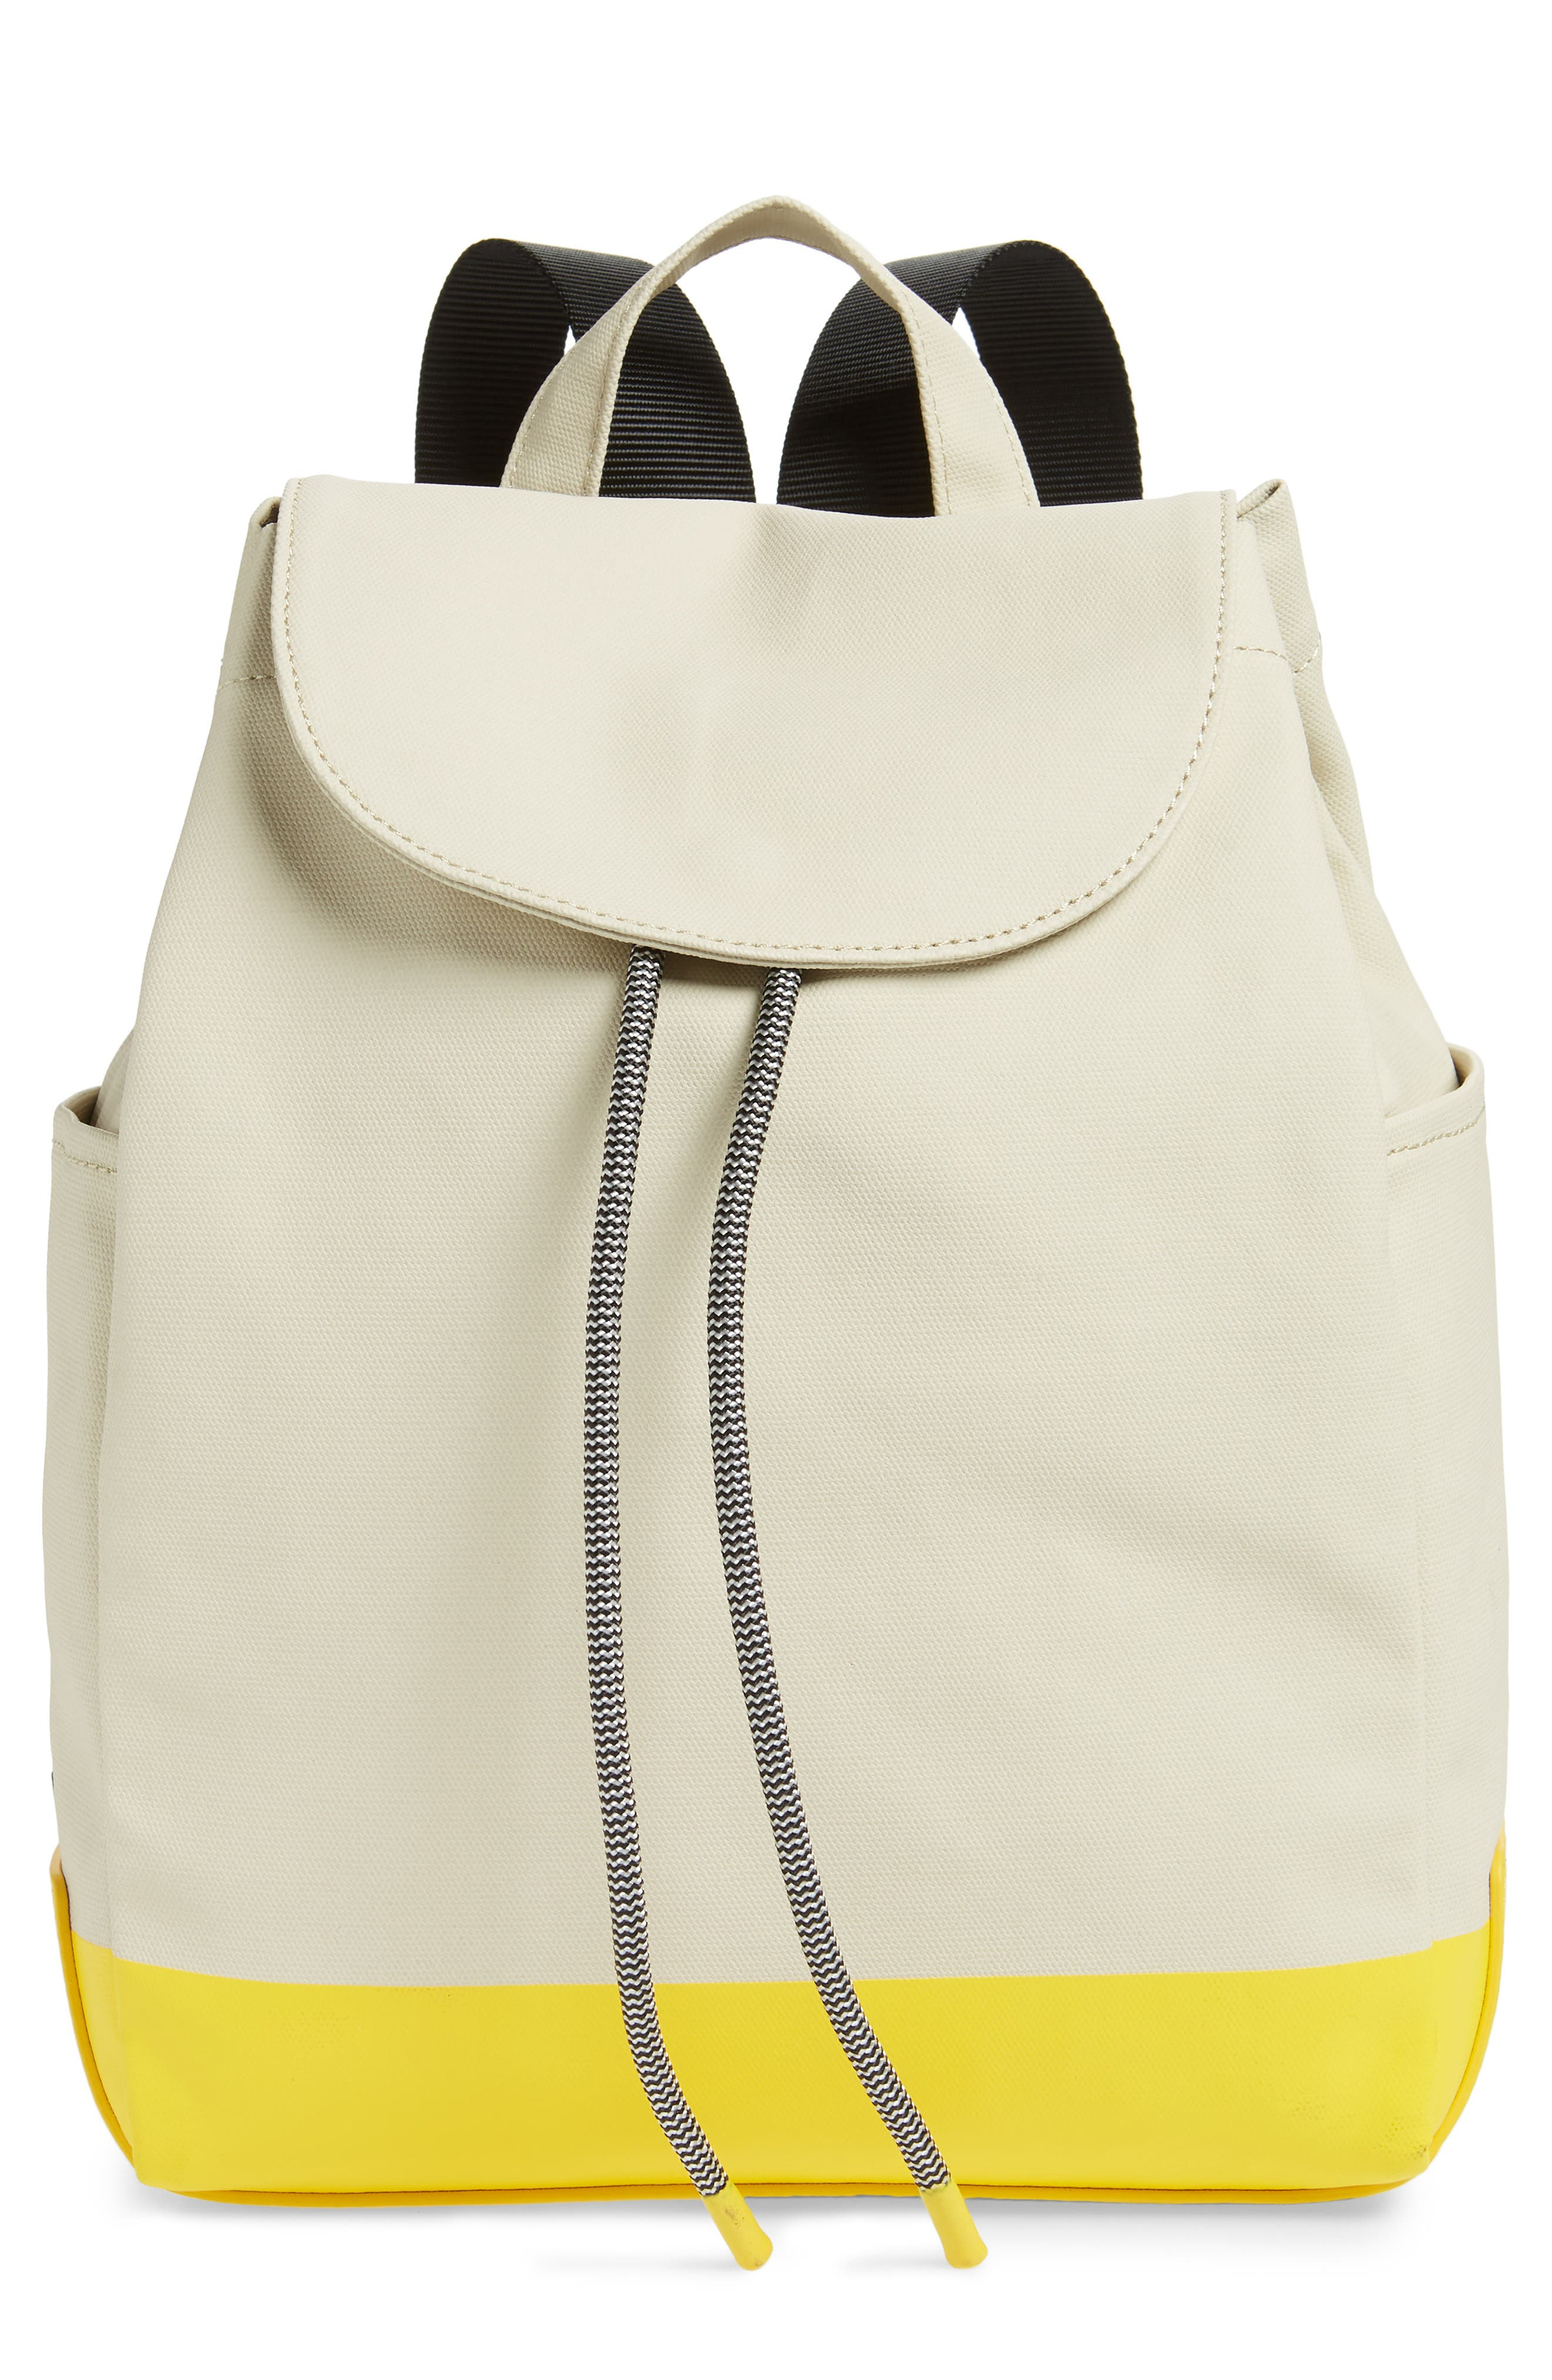 Penny Flap Backpack,                             Main thumbnail 1, color,                             IVORY BIRCH/YELLOW